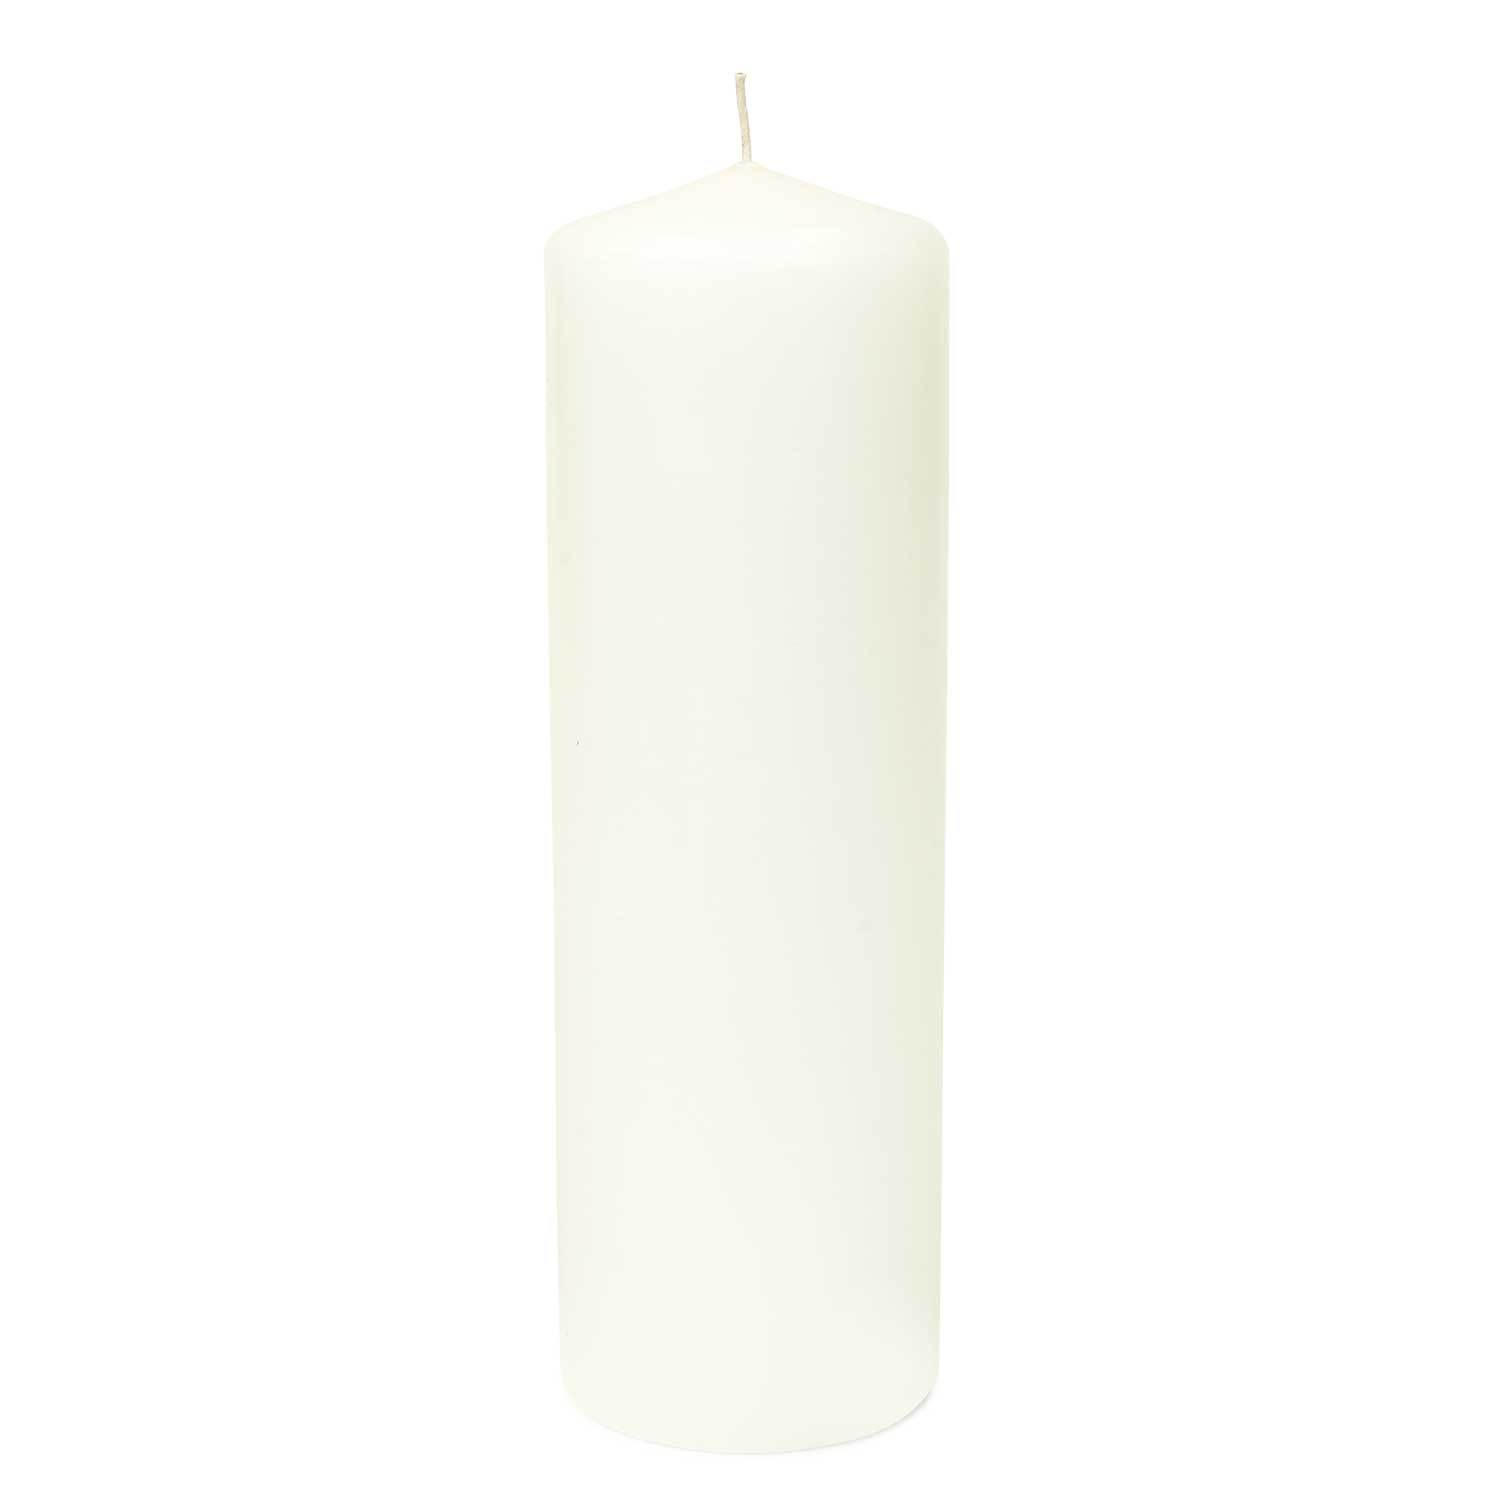 Buy 3x9 Unscented White Pillar Candle At Candlemart Com For Only 4 49